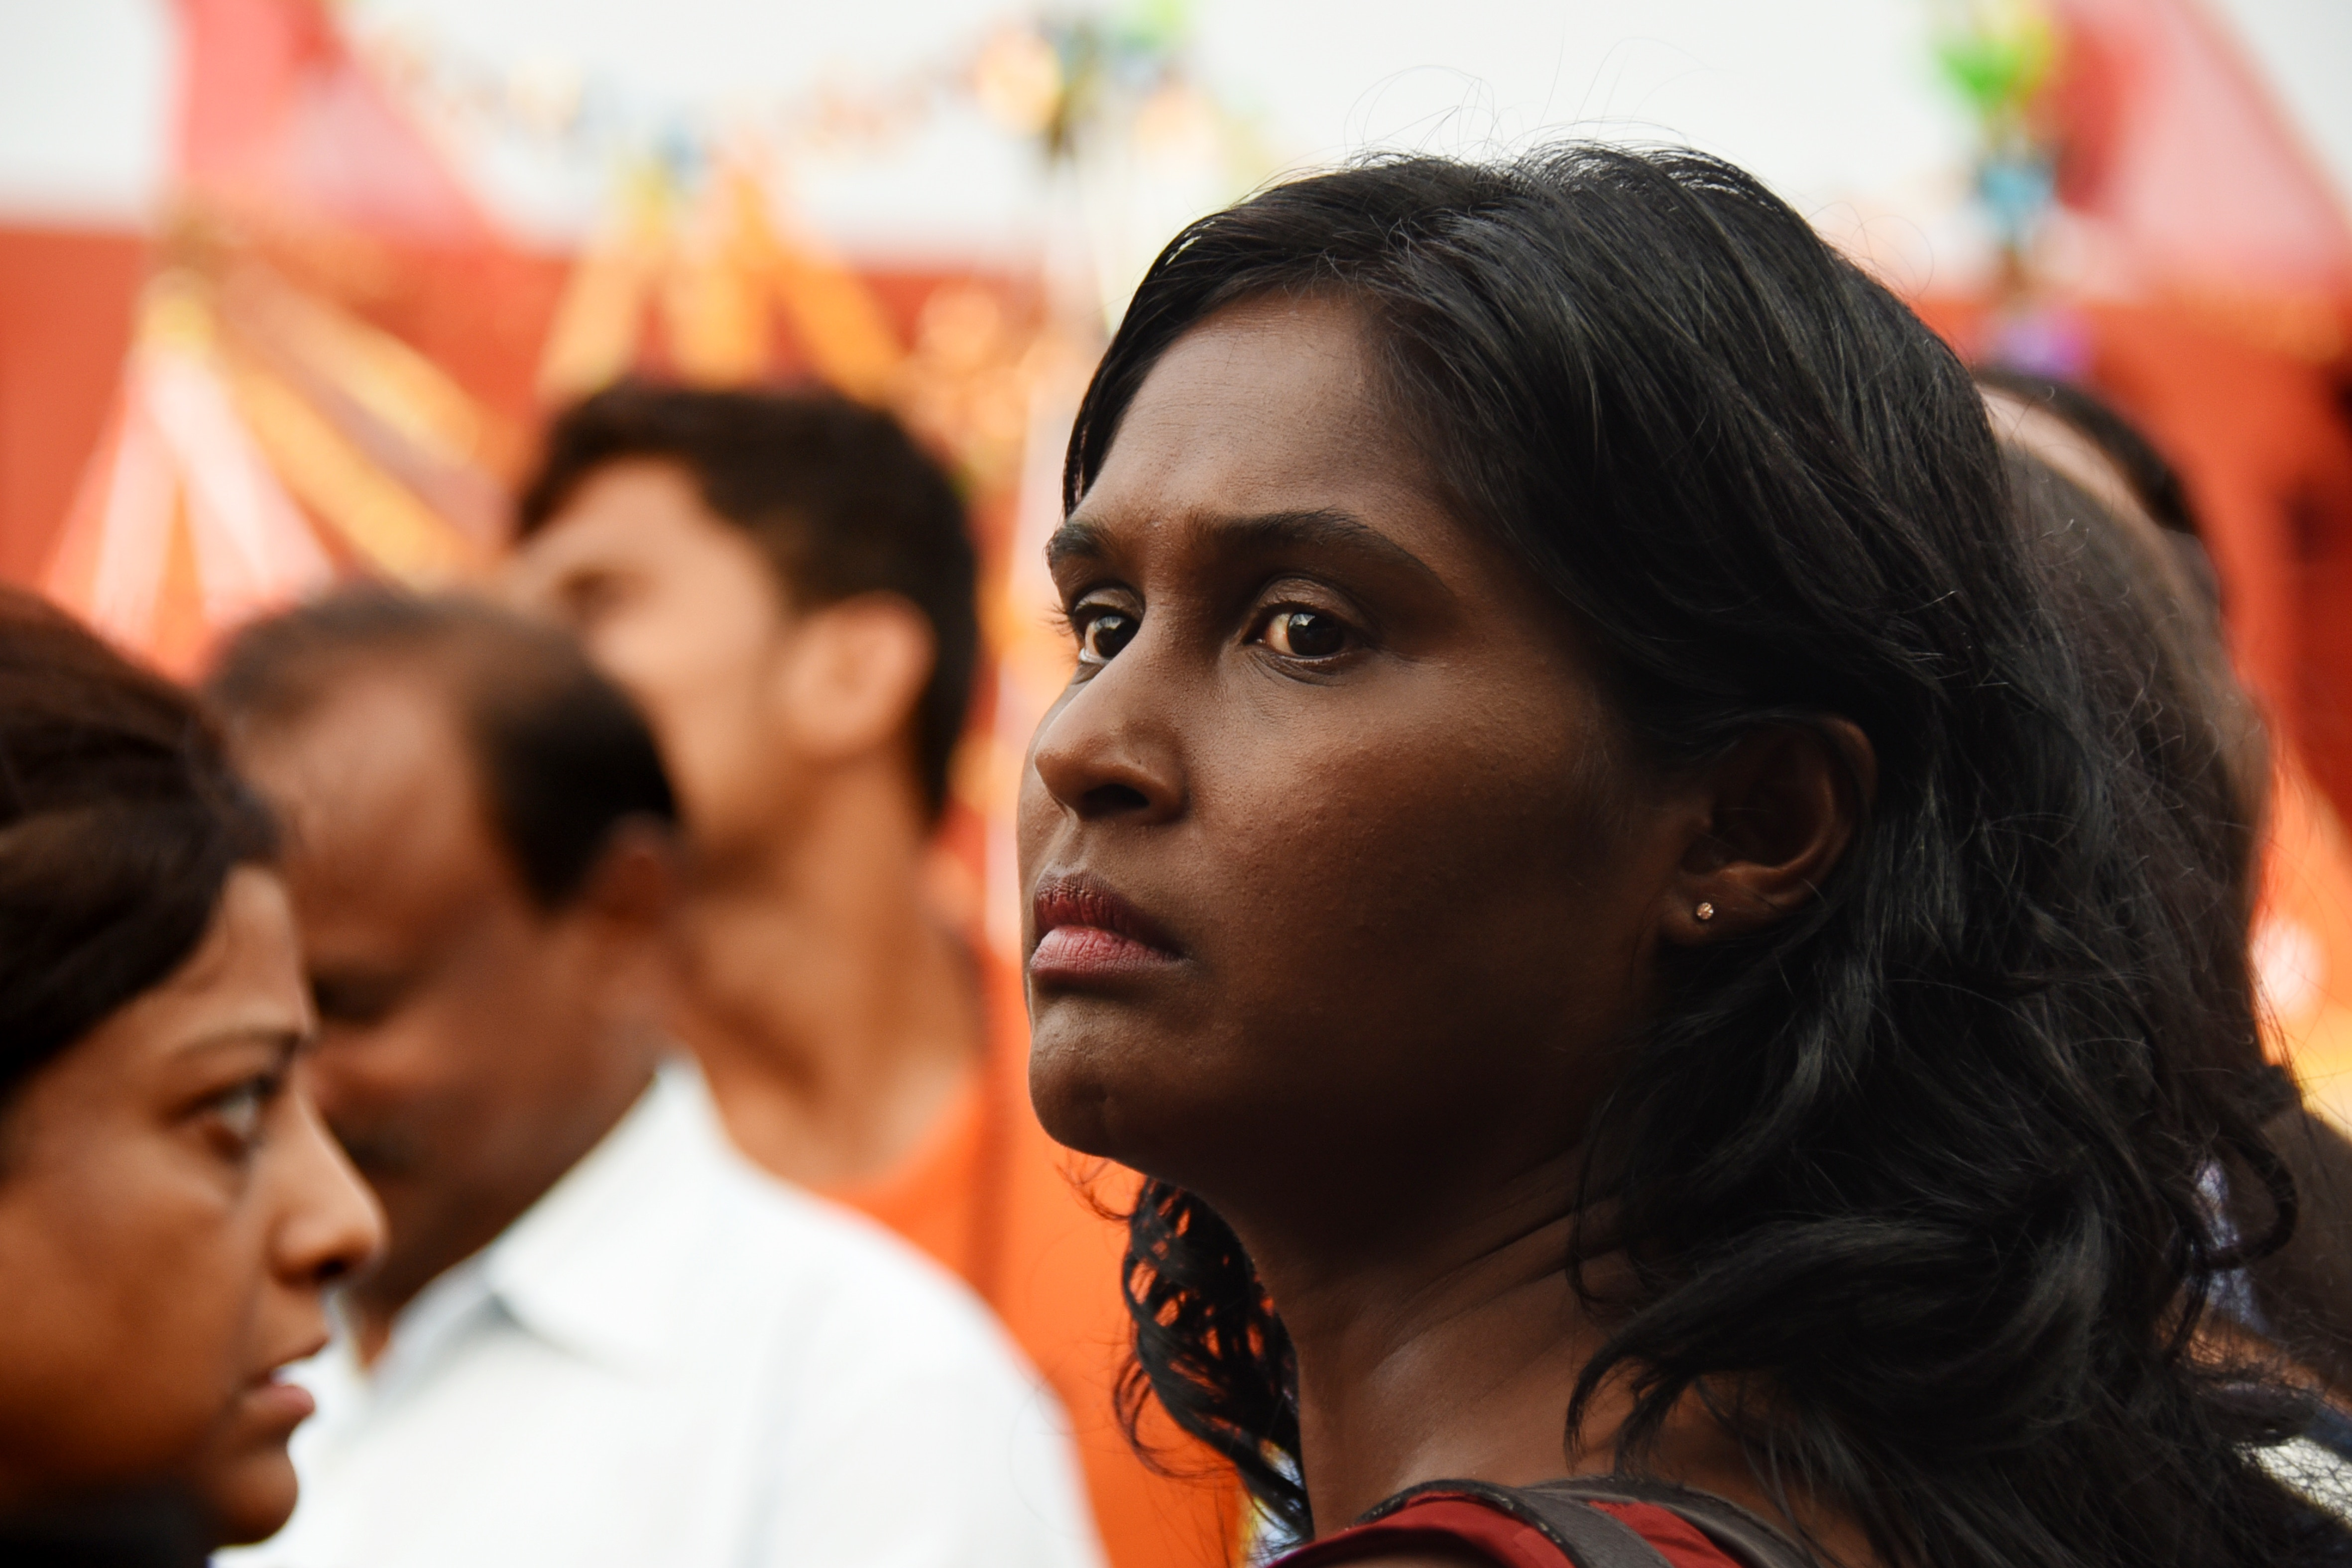 British parliament group report names India for religious freedom abuses